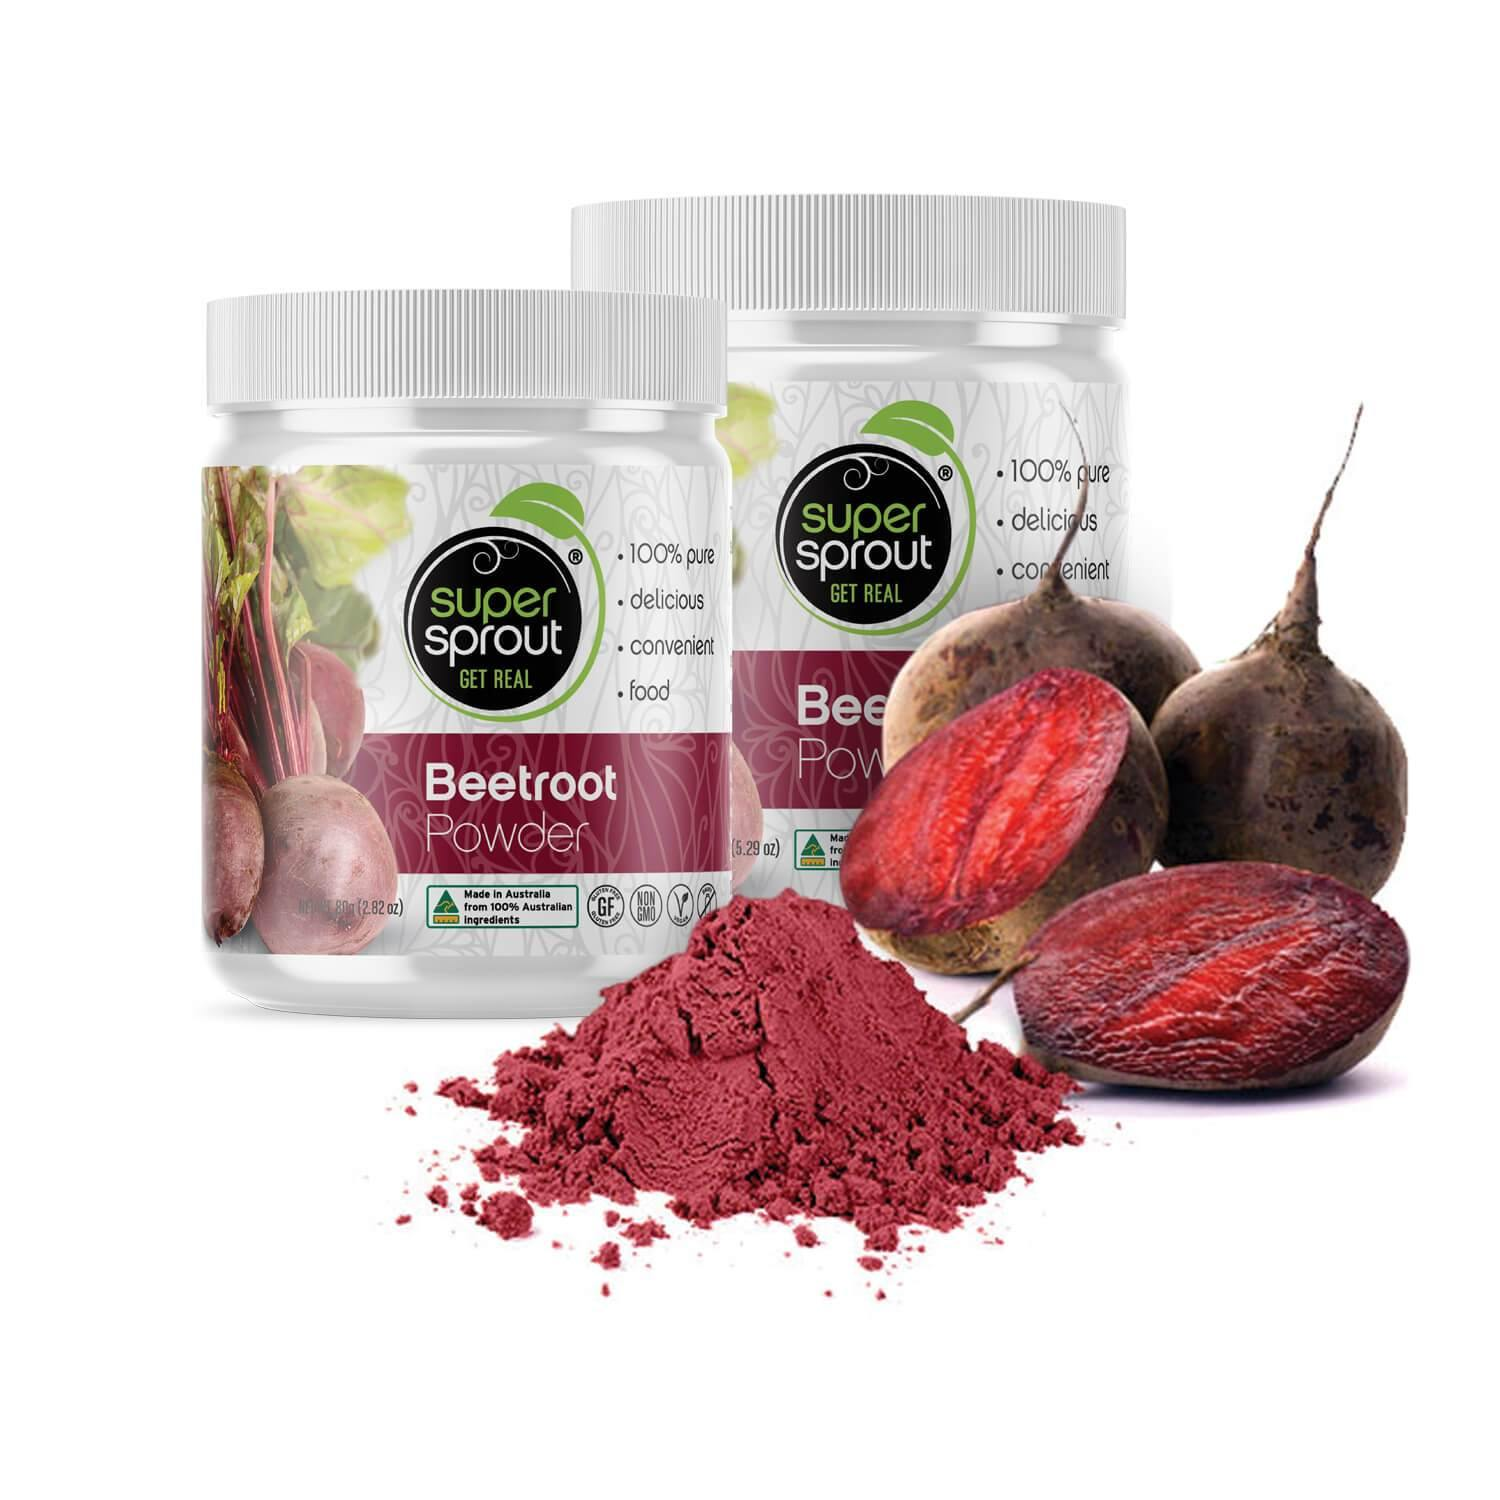 Super Sprout Beetroot Powder - EZ Organic Shop